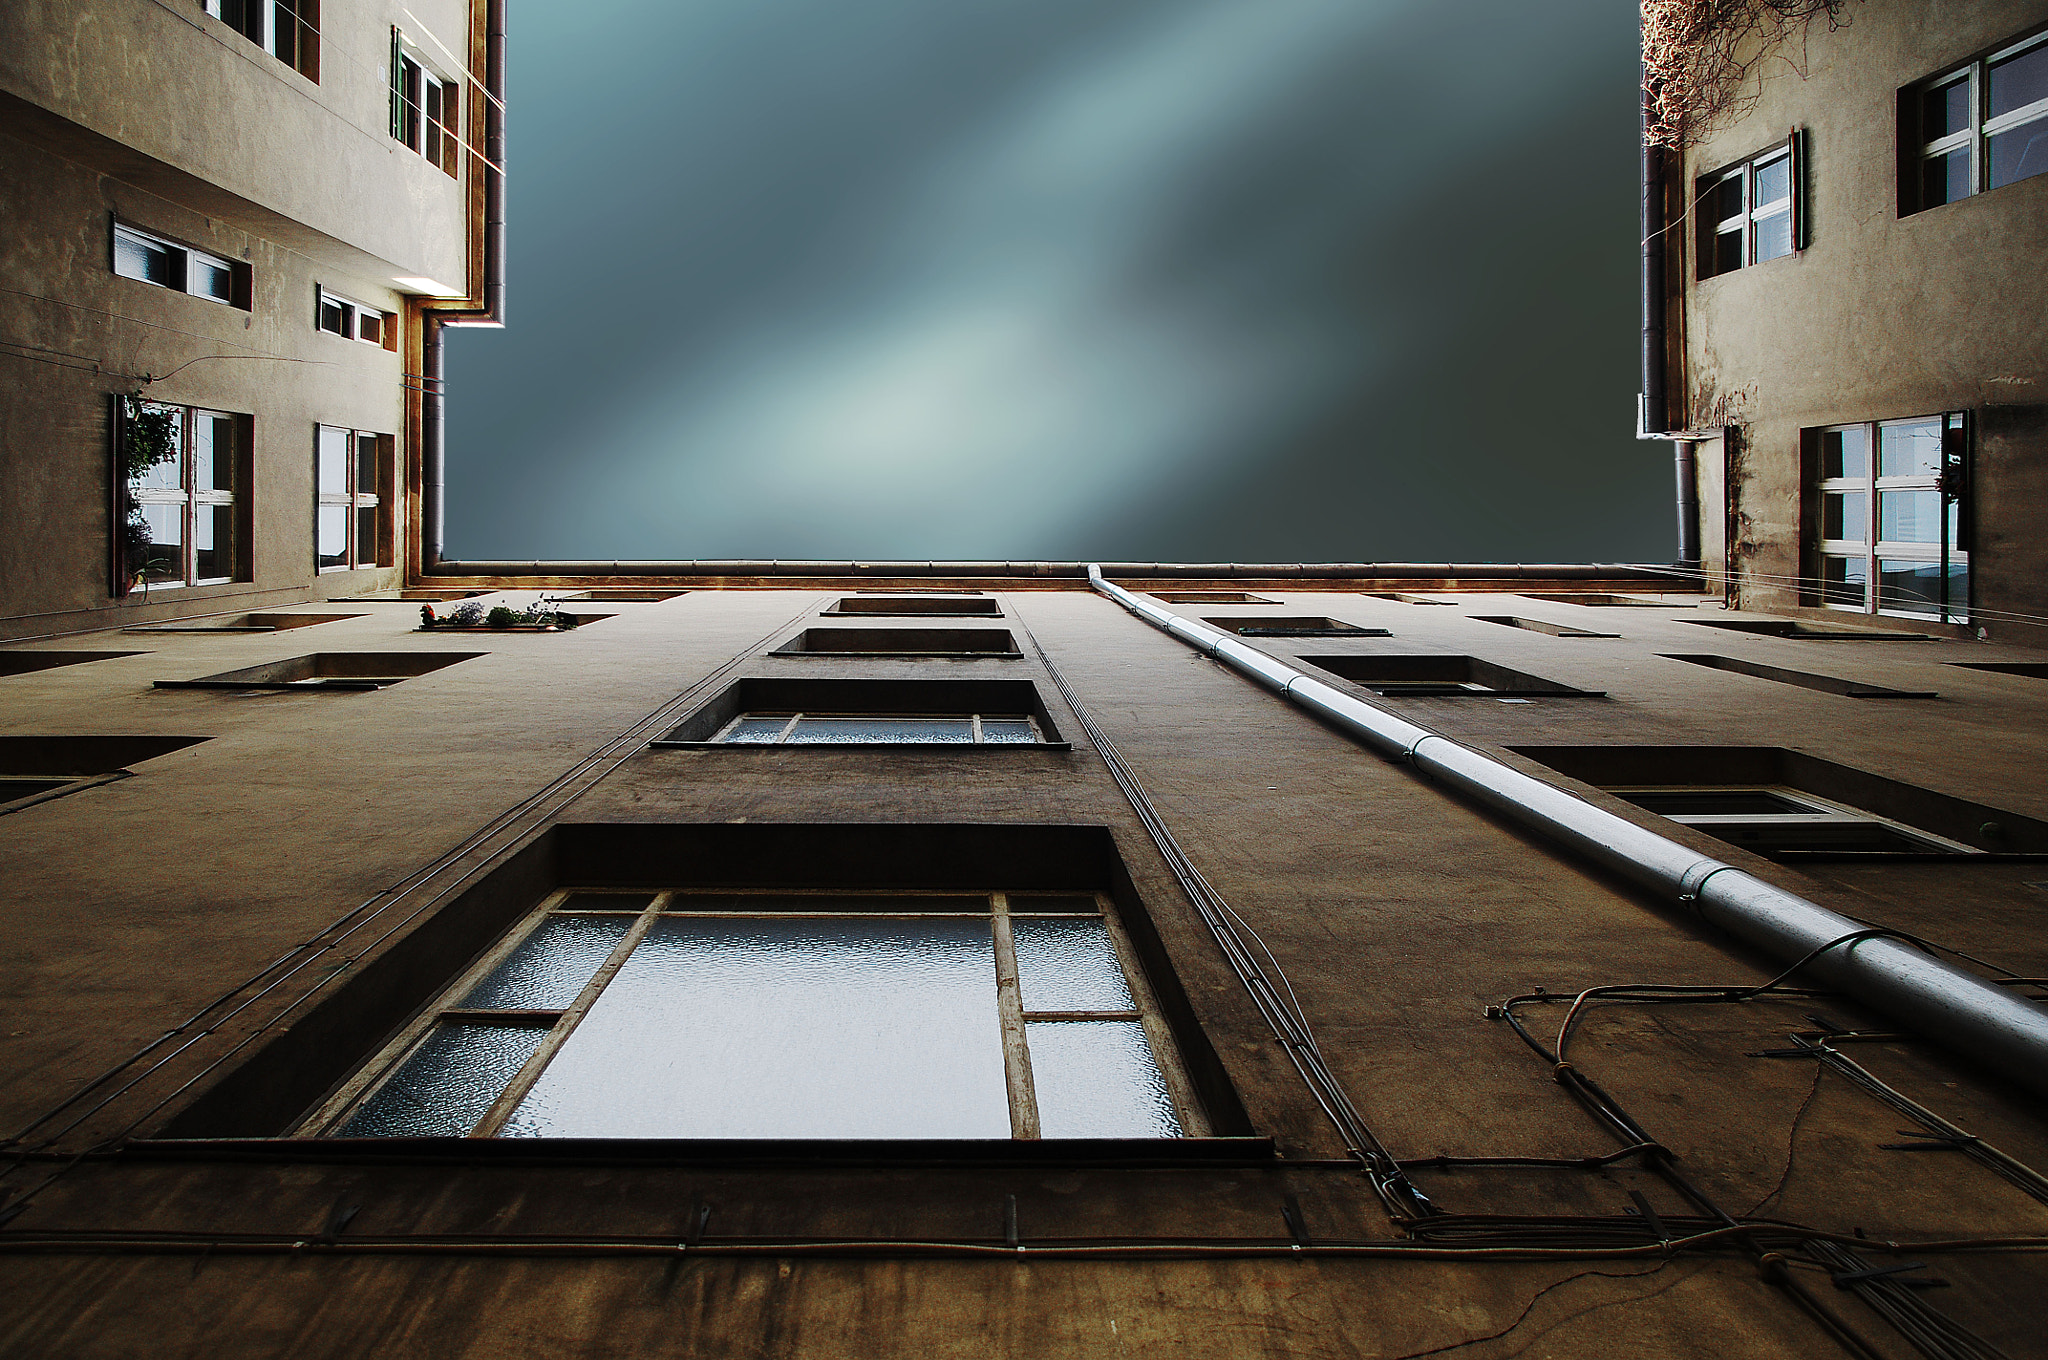 Photograph backstreet by Michael Köster on 500px